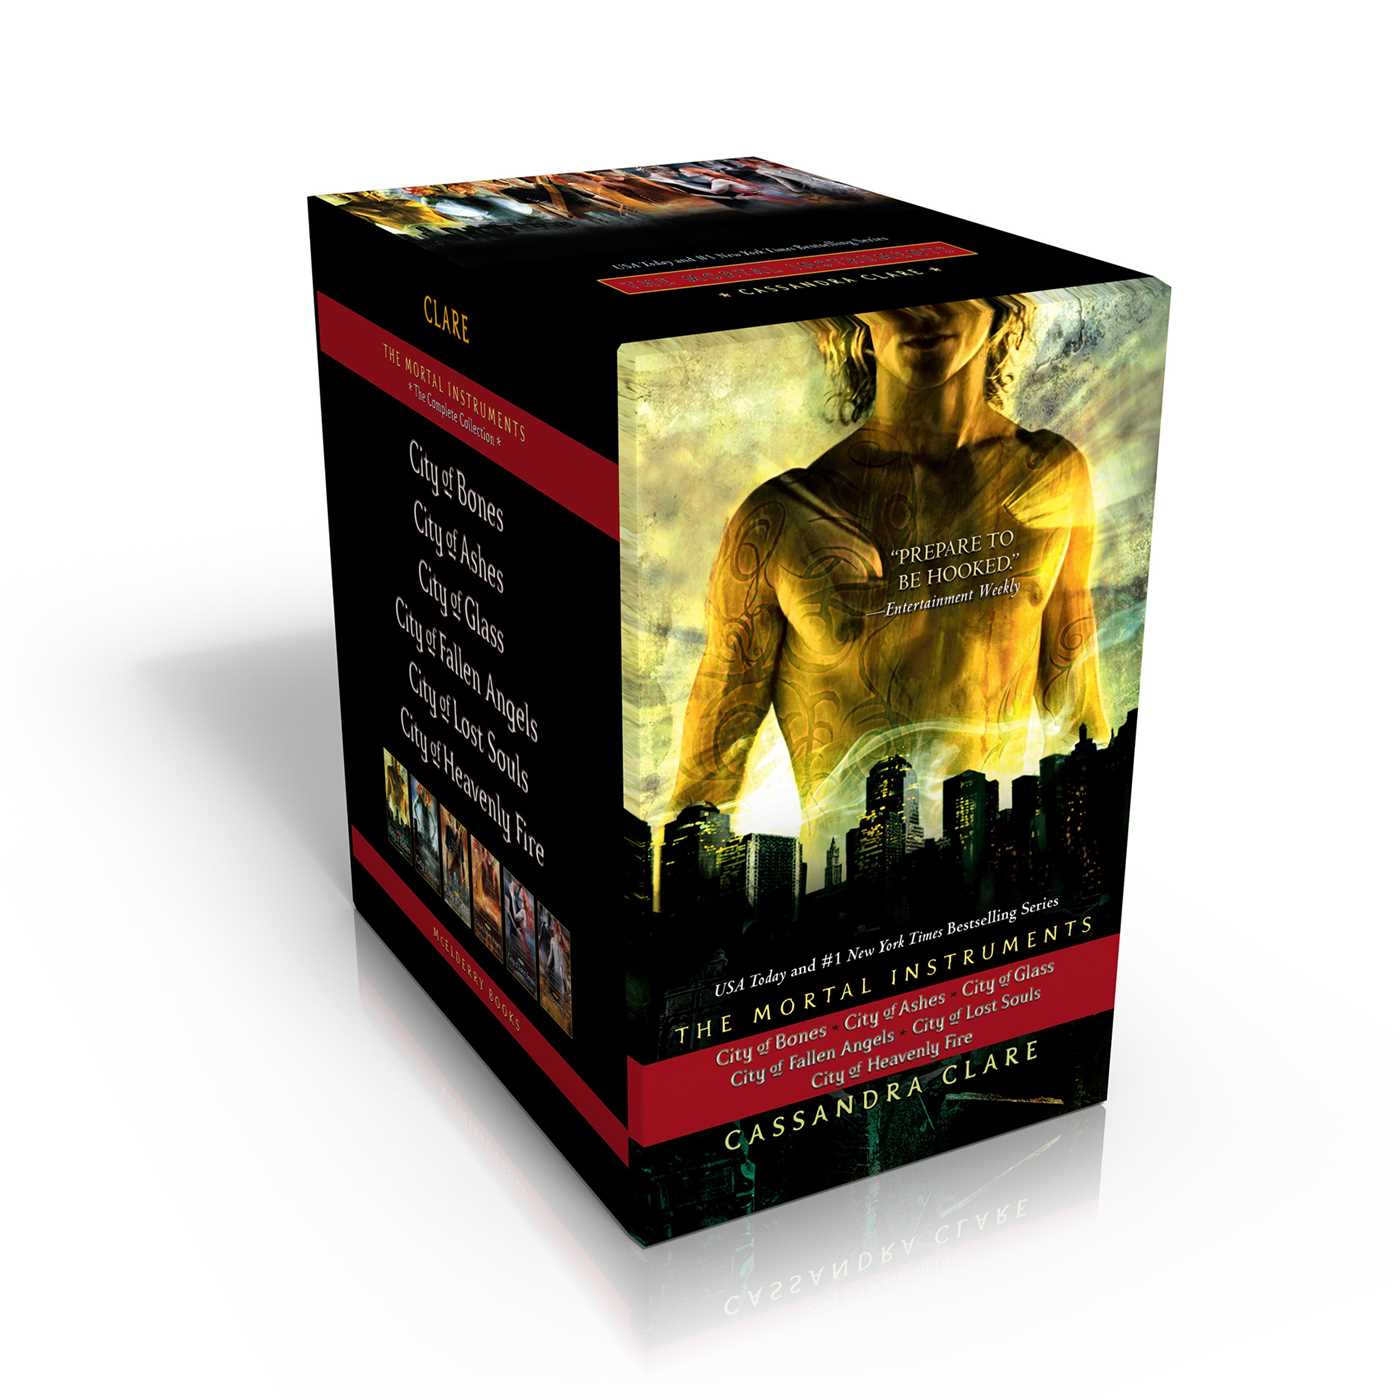 Mortal-instruments-the-complete-collection-9781481442961_hr